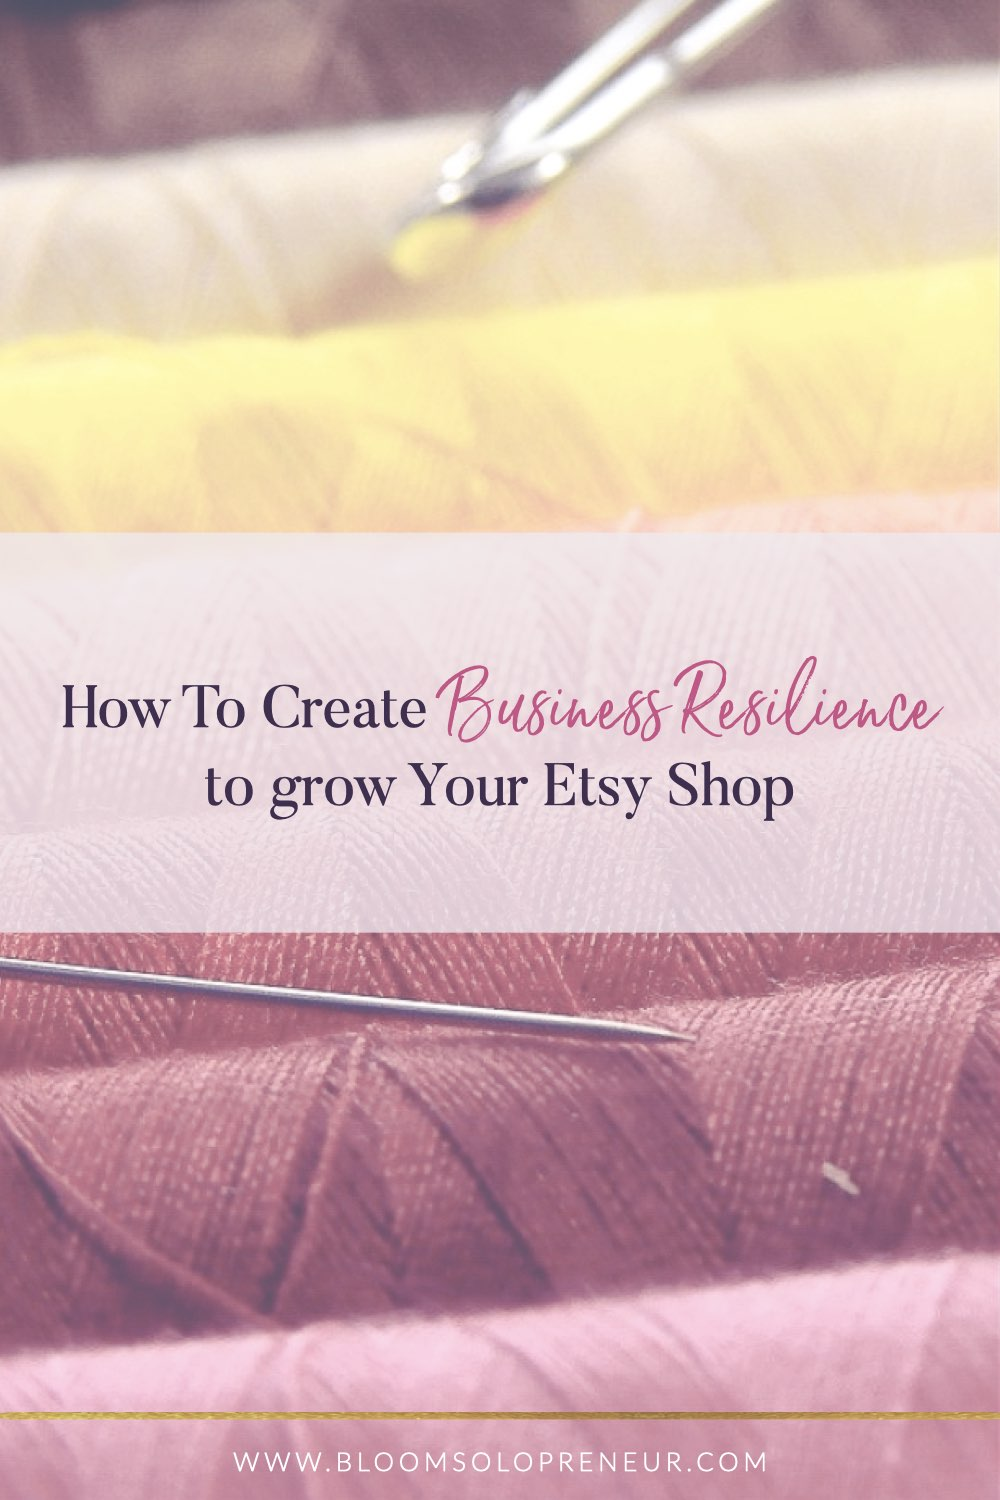 Reduce your dependency on Etsy and build business resilience in your solo business, by looking at your business in a fresh light to see if you can easily adapt it and grow. When every sale counts, business continuity is important. No business is immune from changes that are outside of your control. Running a home business means that you are more susceptible to market changes, or Etsy changes. You can reduce the risk of losing sales by ensuring you have business resilience. #bloomsolopreneur